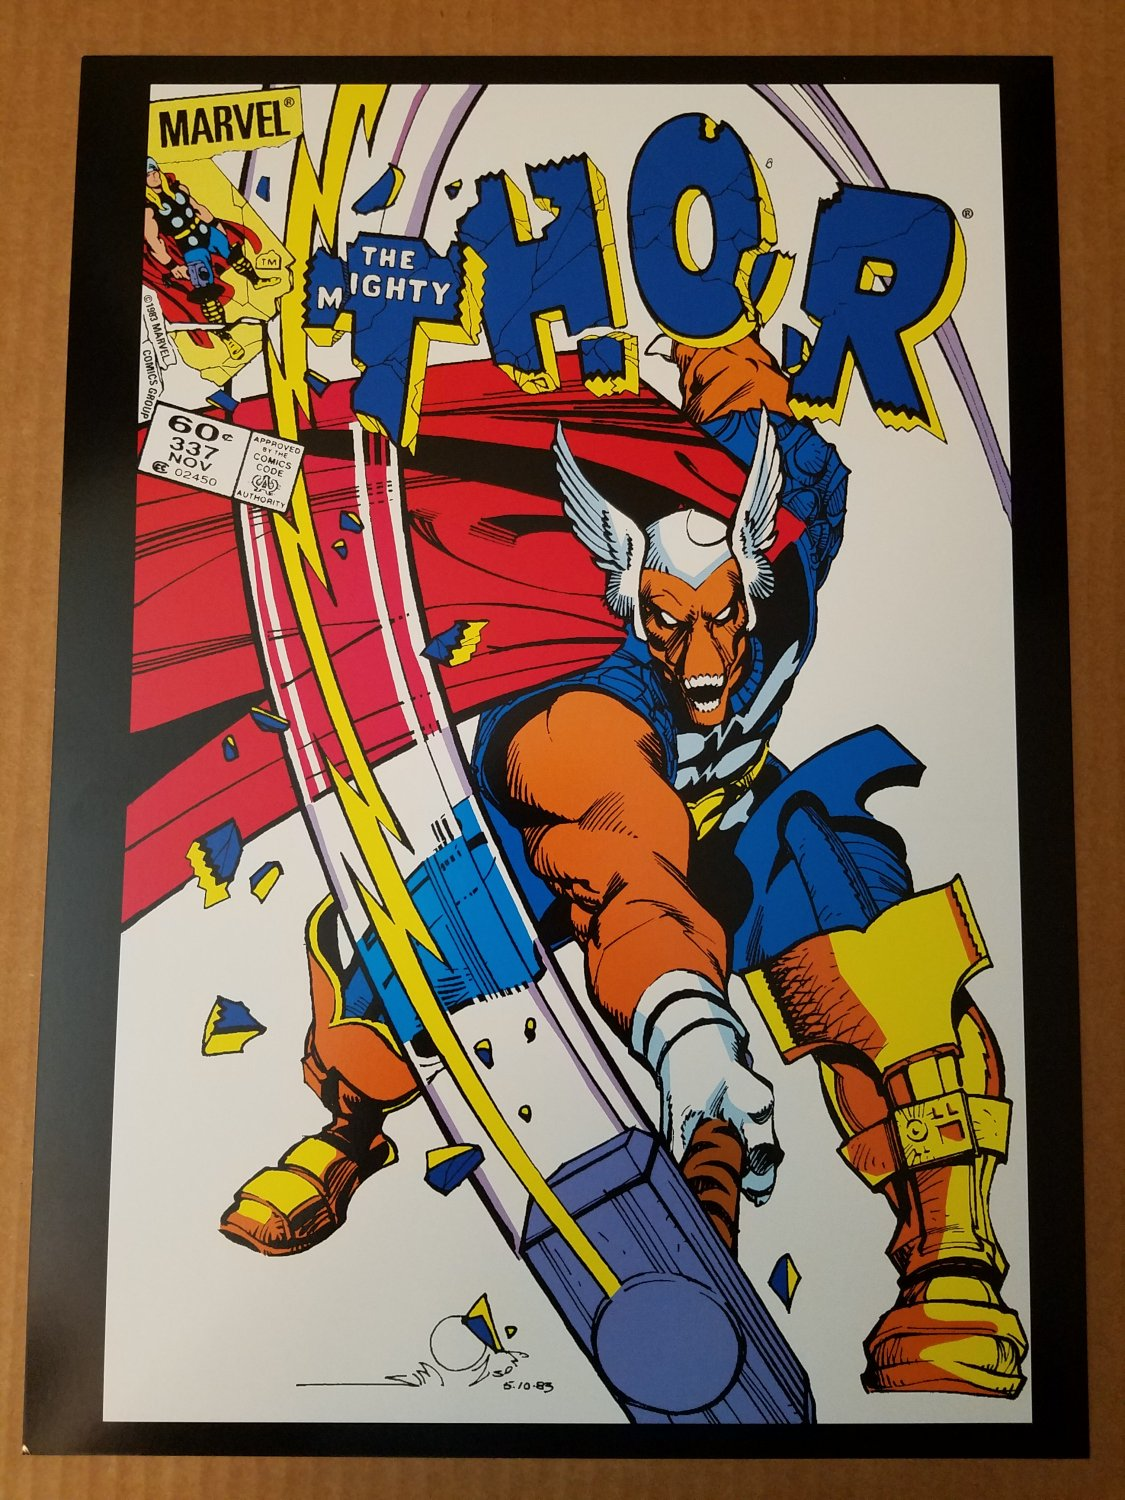 Thor 337 First Beta Ray Bill Marvel Comics Poster by Walt Simonson